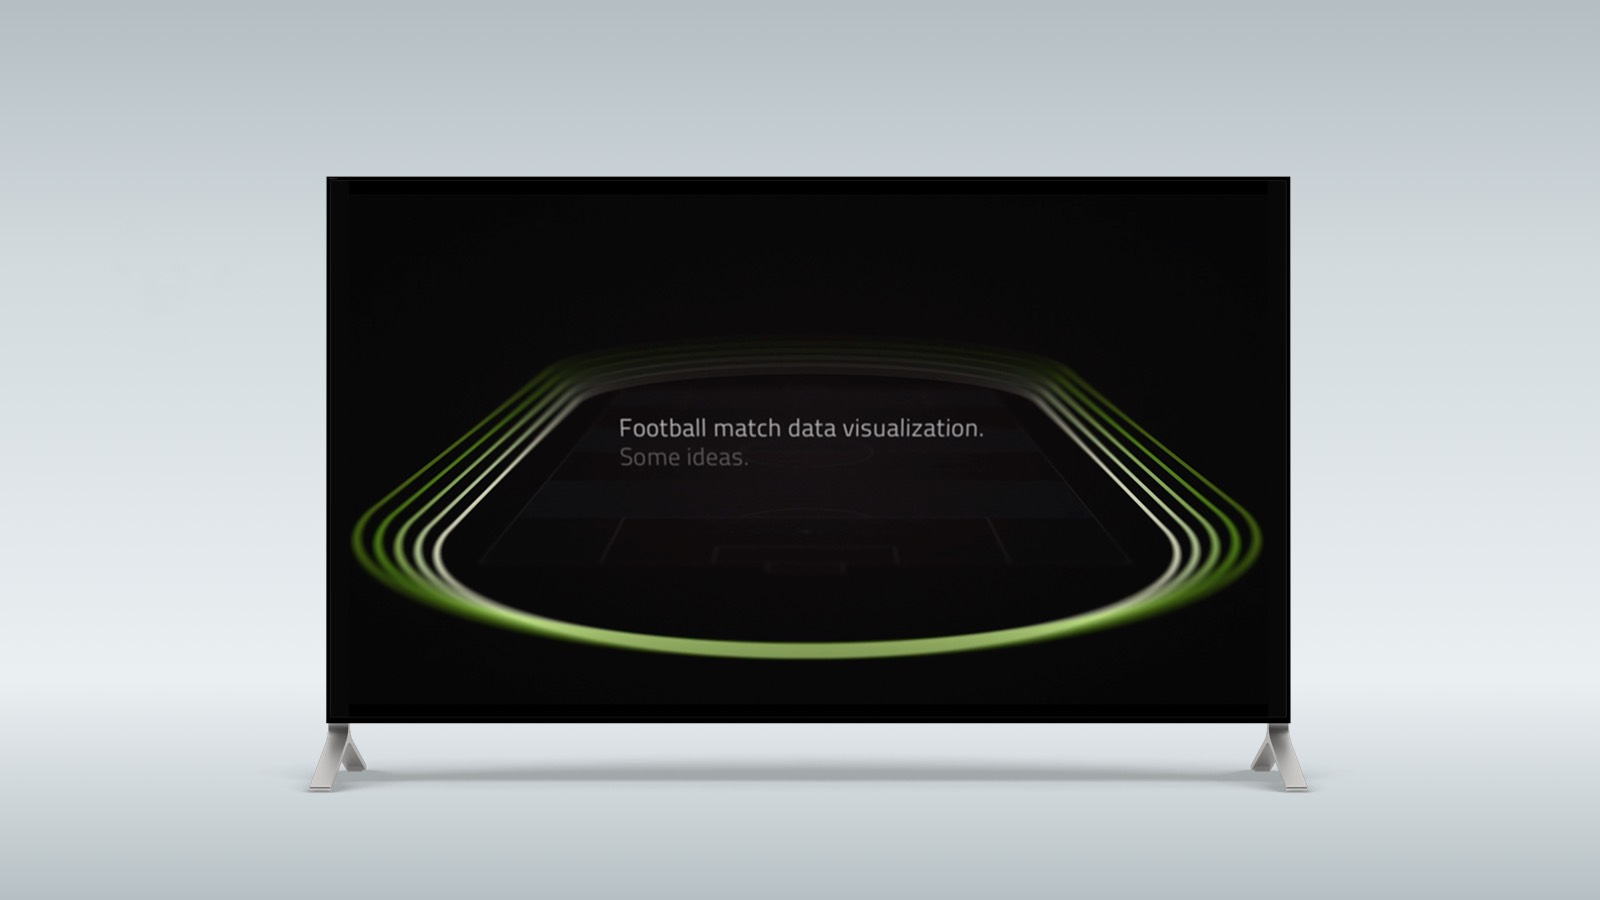 Football match data visualization